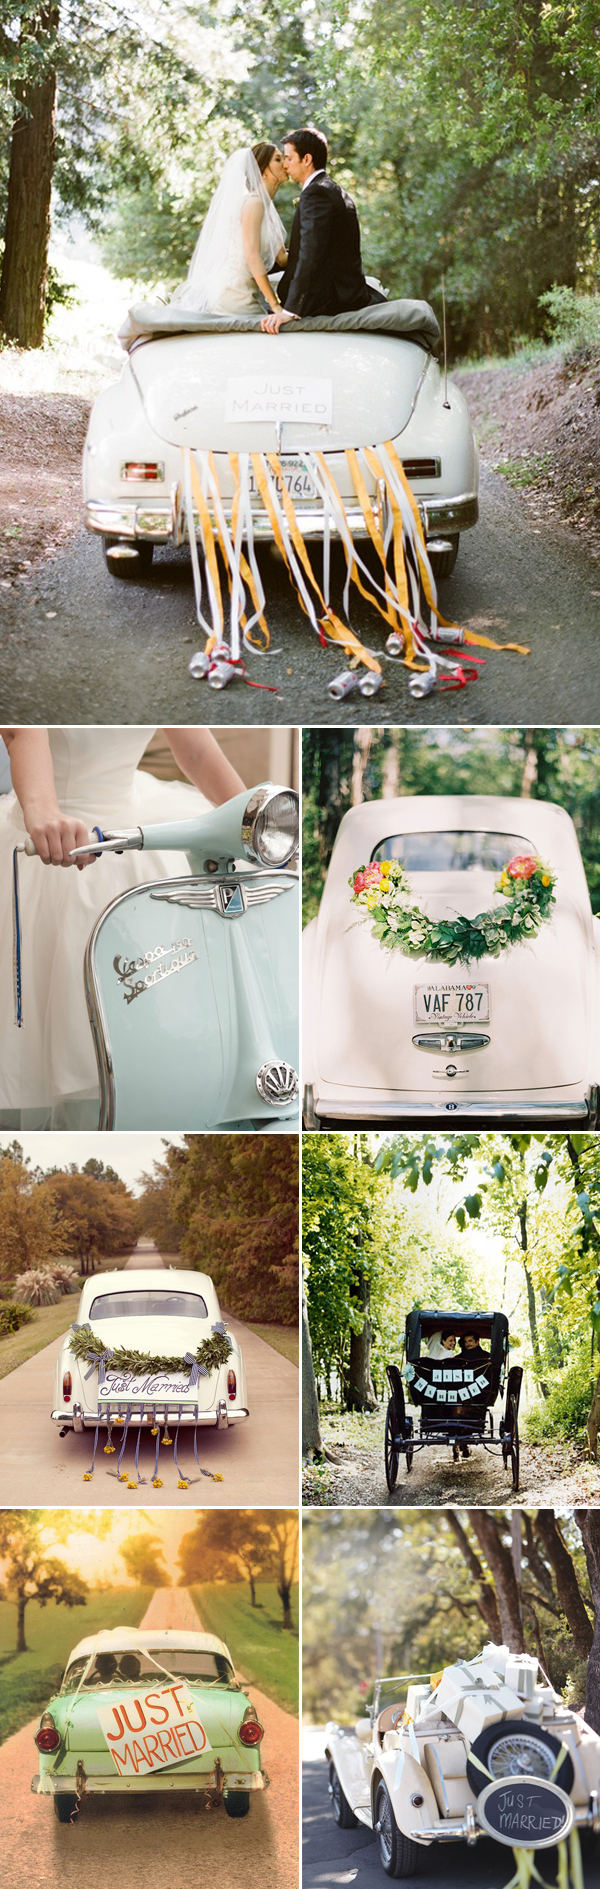 01-vintage wedding cars